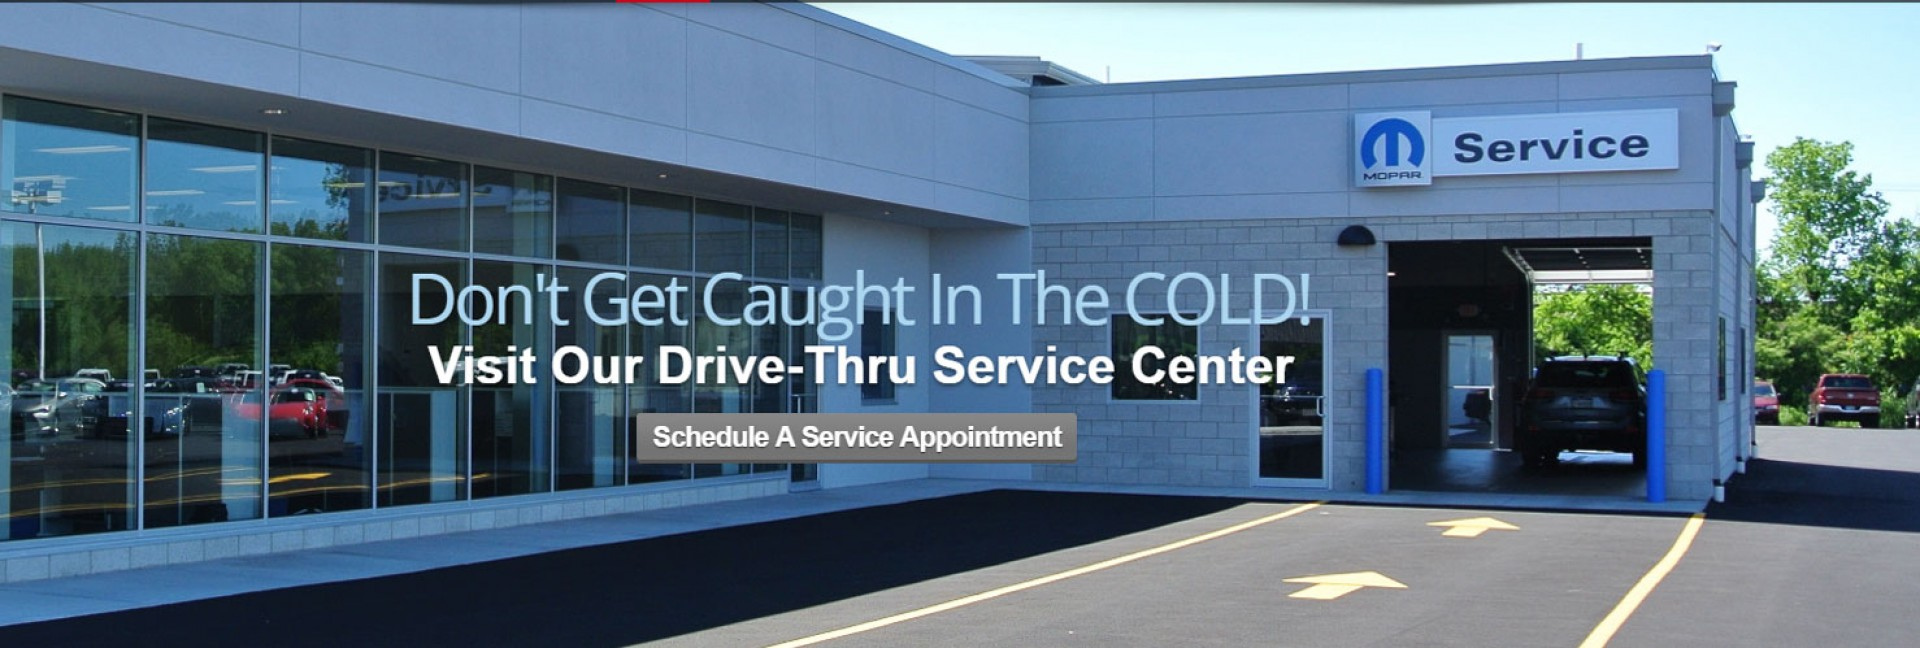 Don't Get Caught in the Cold! Visit Out Drive-Thru Service Center